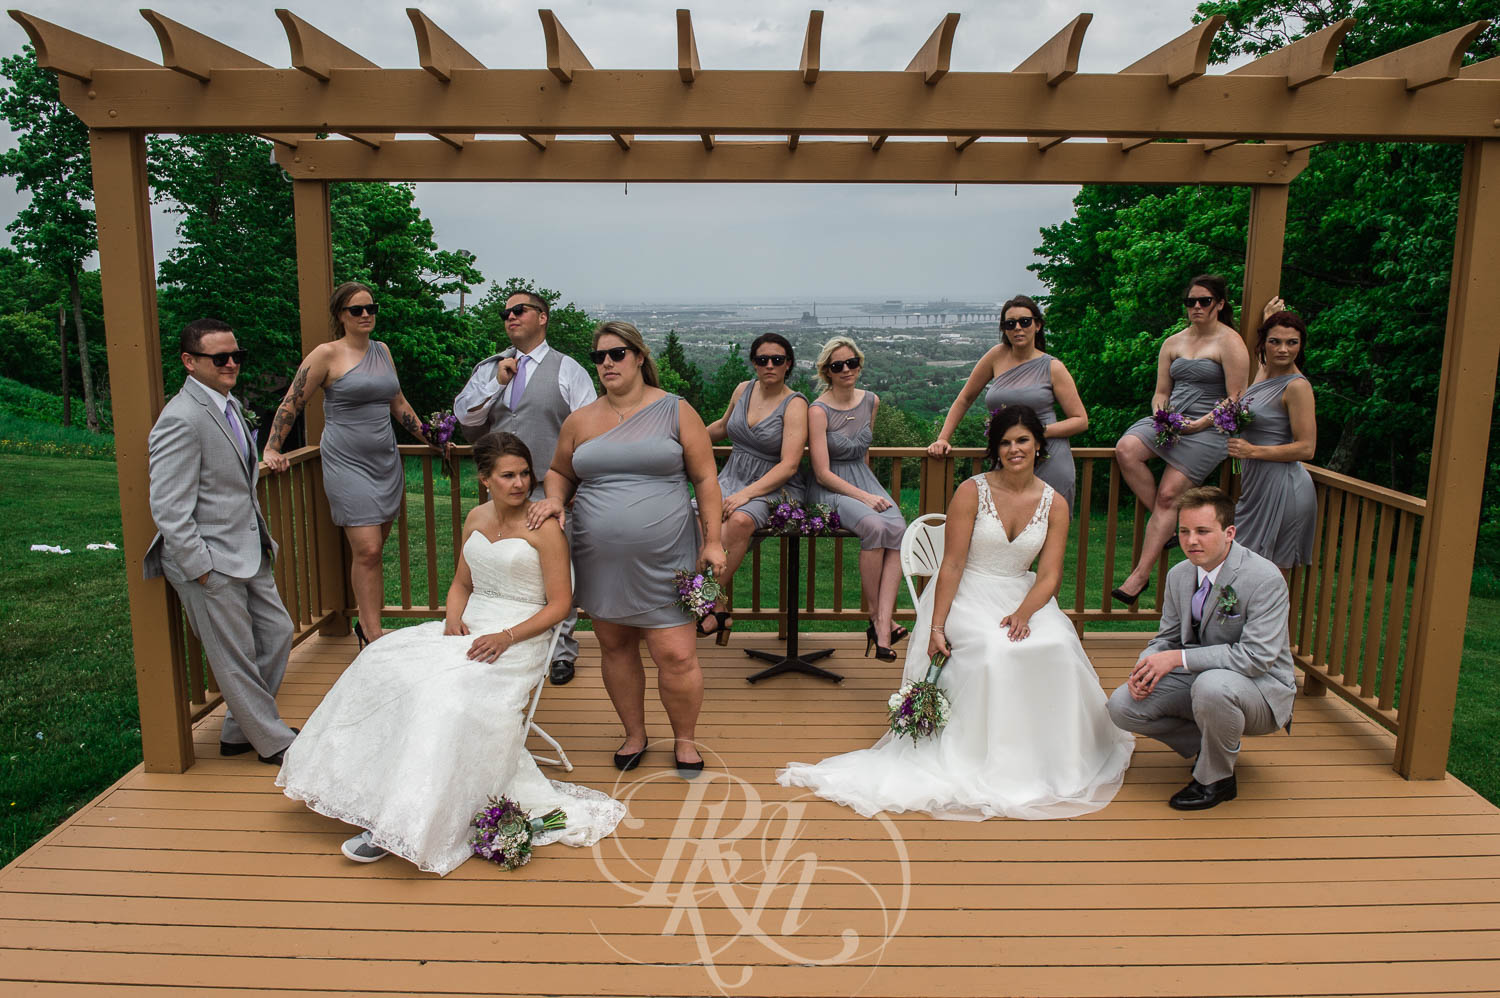 Britni & Paige - LGBT Minnesota Wedding Photography - Spirit Mountain - RKH Images  (19 of 32).jpg